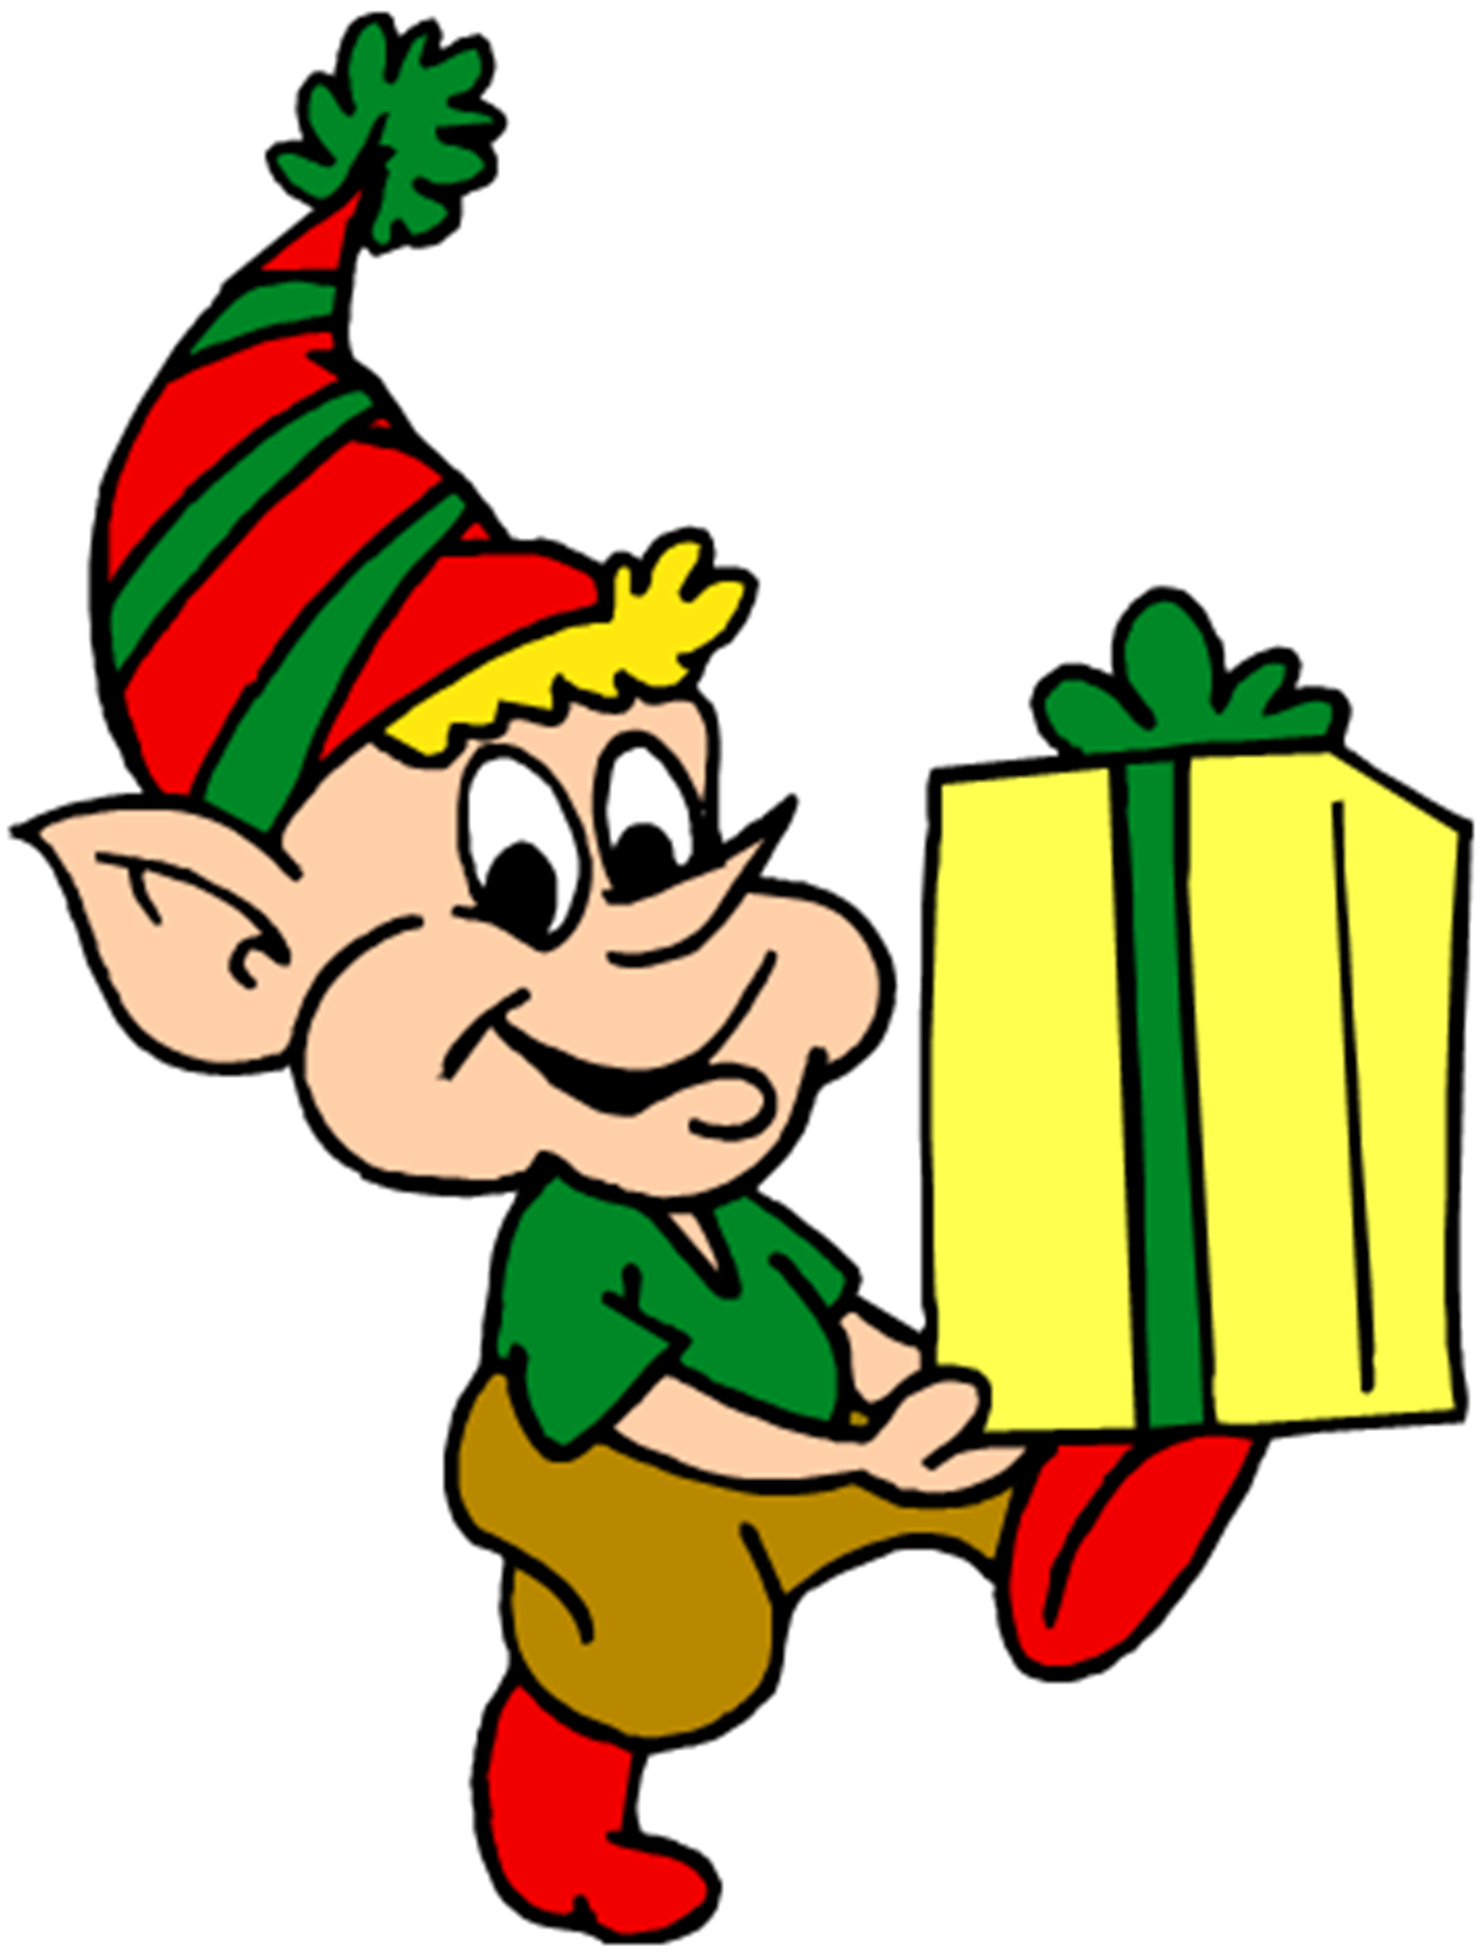 Elf clipart pants. Pictures of a group